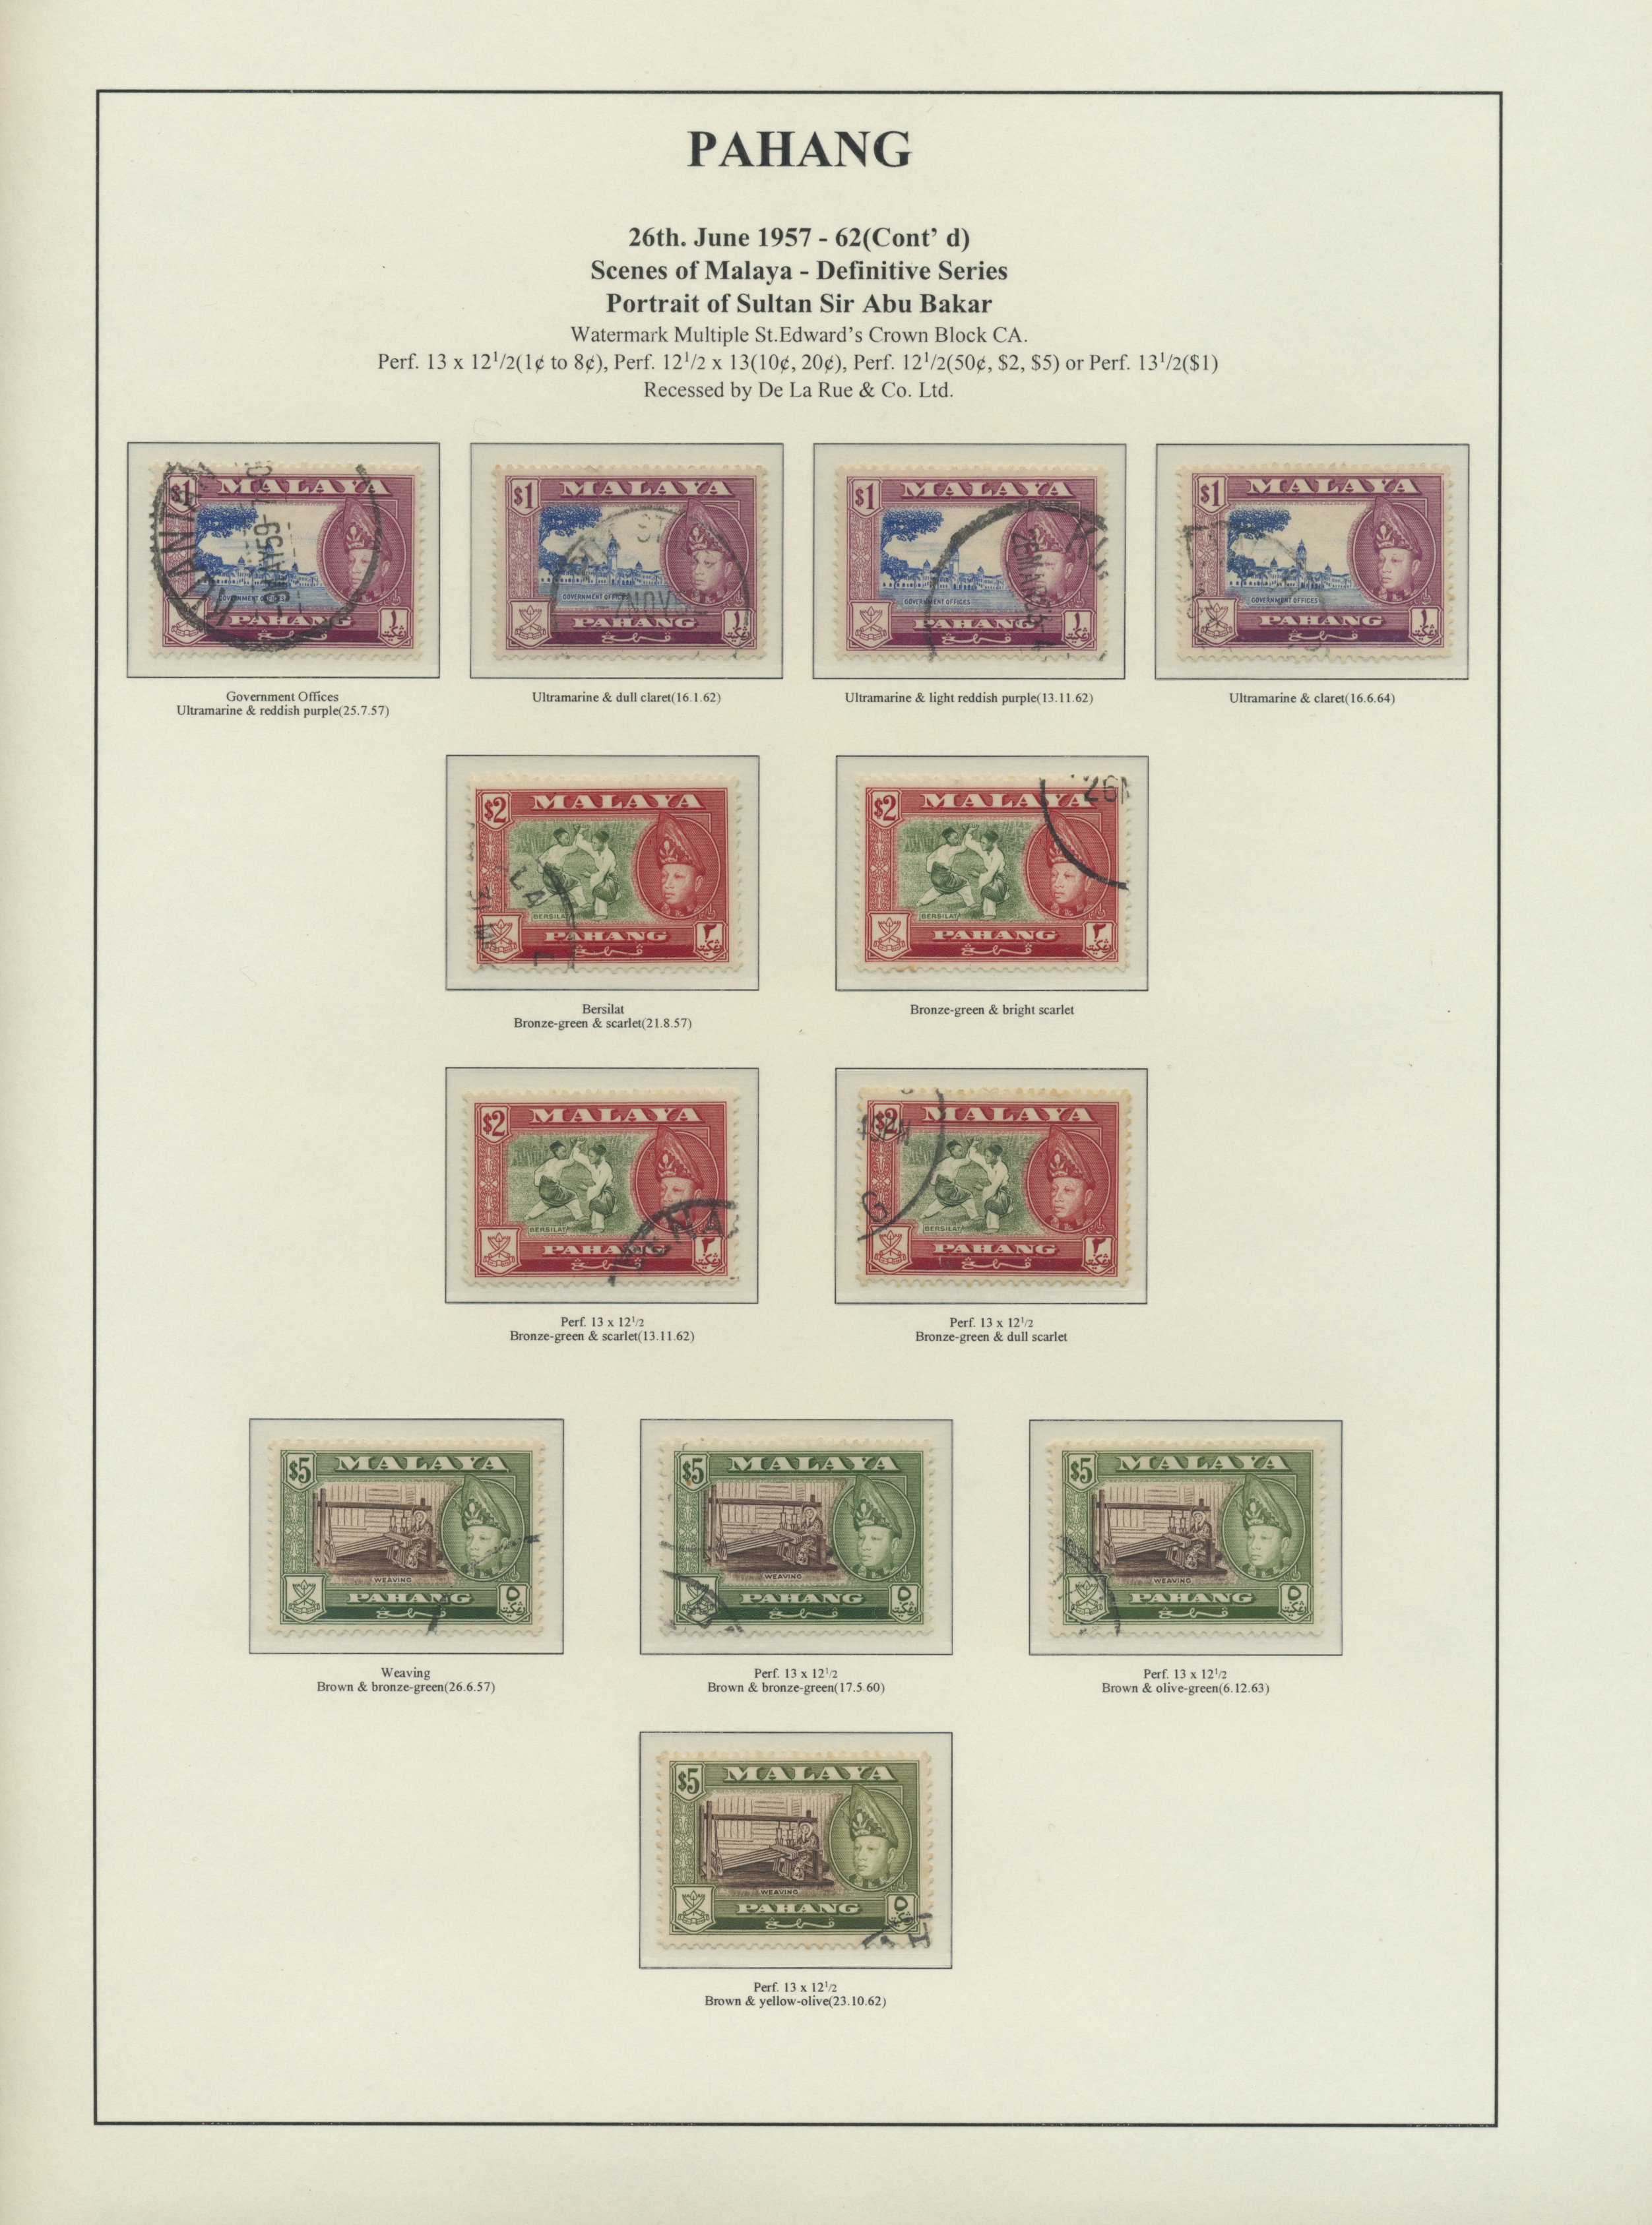 Lot 34573 - Malaiische Staaten - Pahang  -  Auktionshaus Christoph Gärtner GmbH & Co. KG Collections Germany,  Collections Supplement, Surprise boxes #39 Day 7